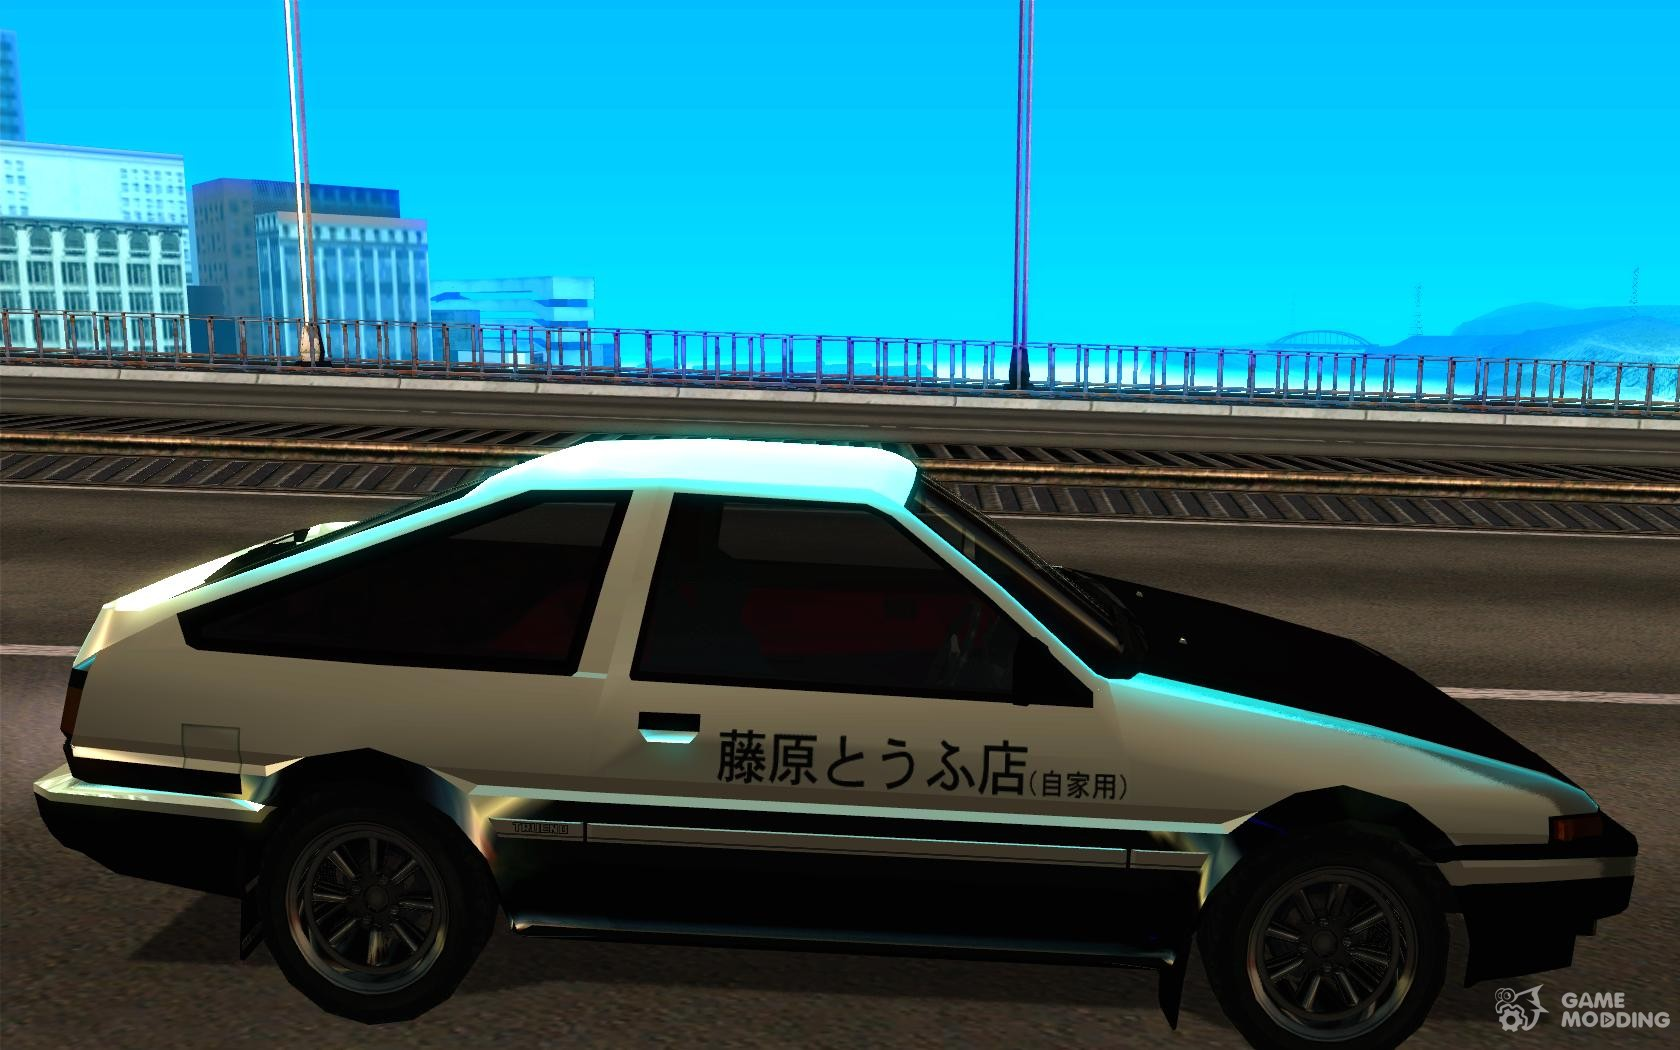 toyota sprinter trueno gt apex ae86 initial d 1983 for gta. Black Bedroom Furniture Sets. Home Design Ideas